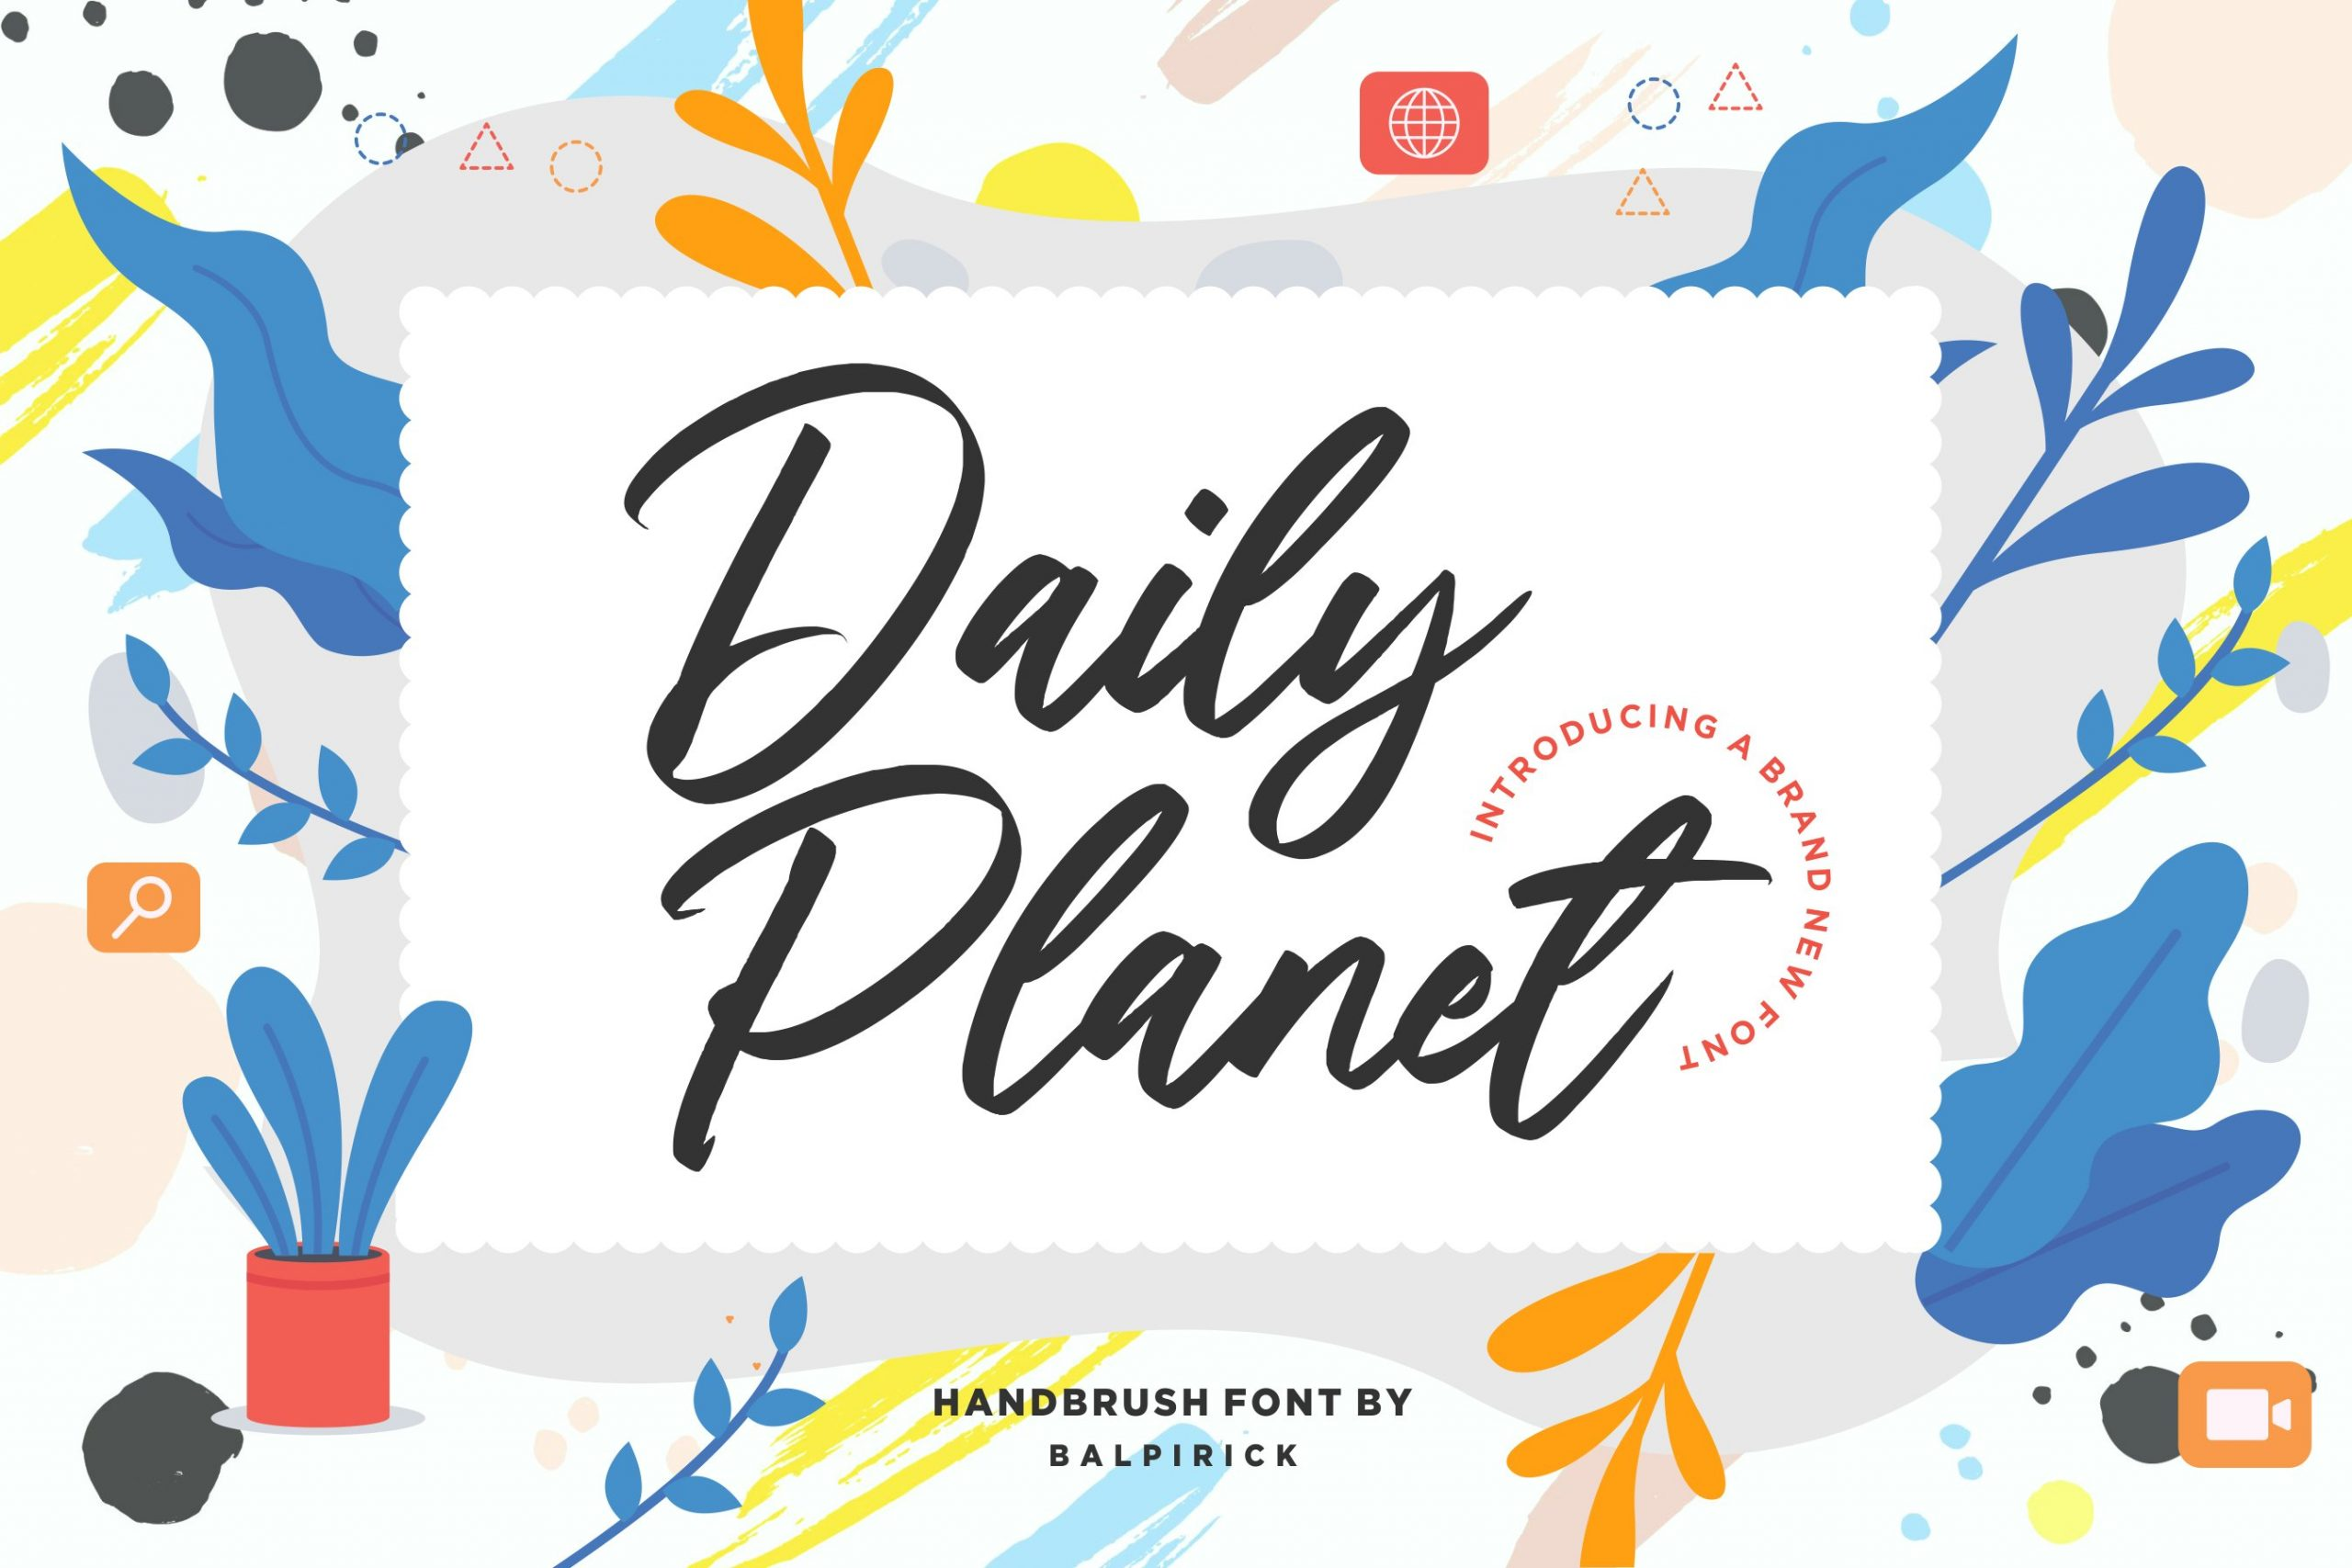 Daily-Planet-Font